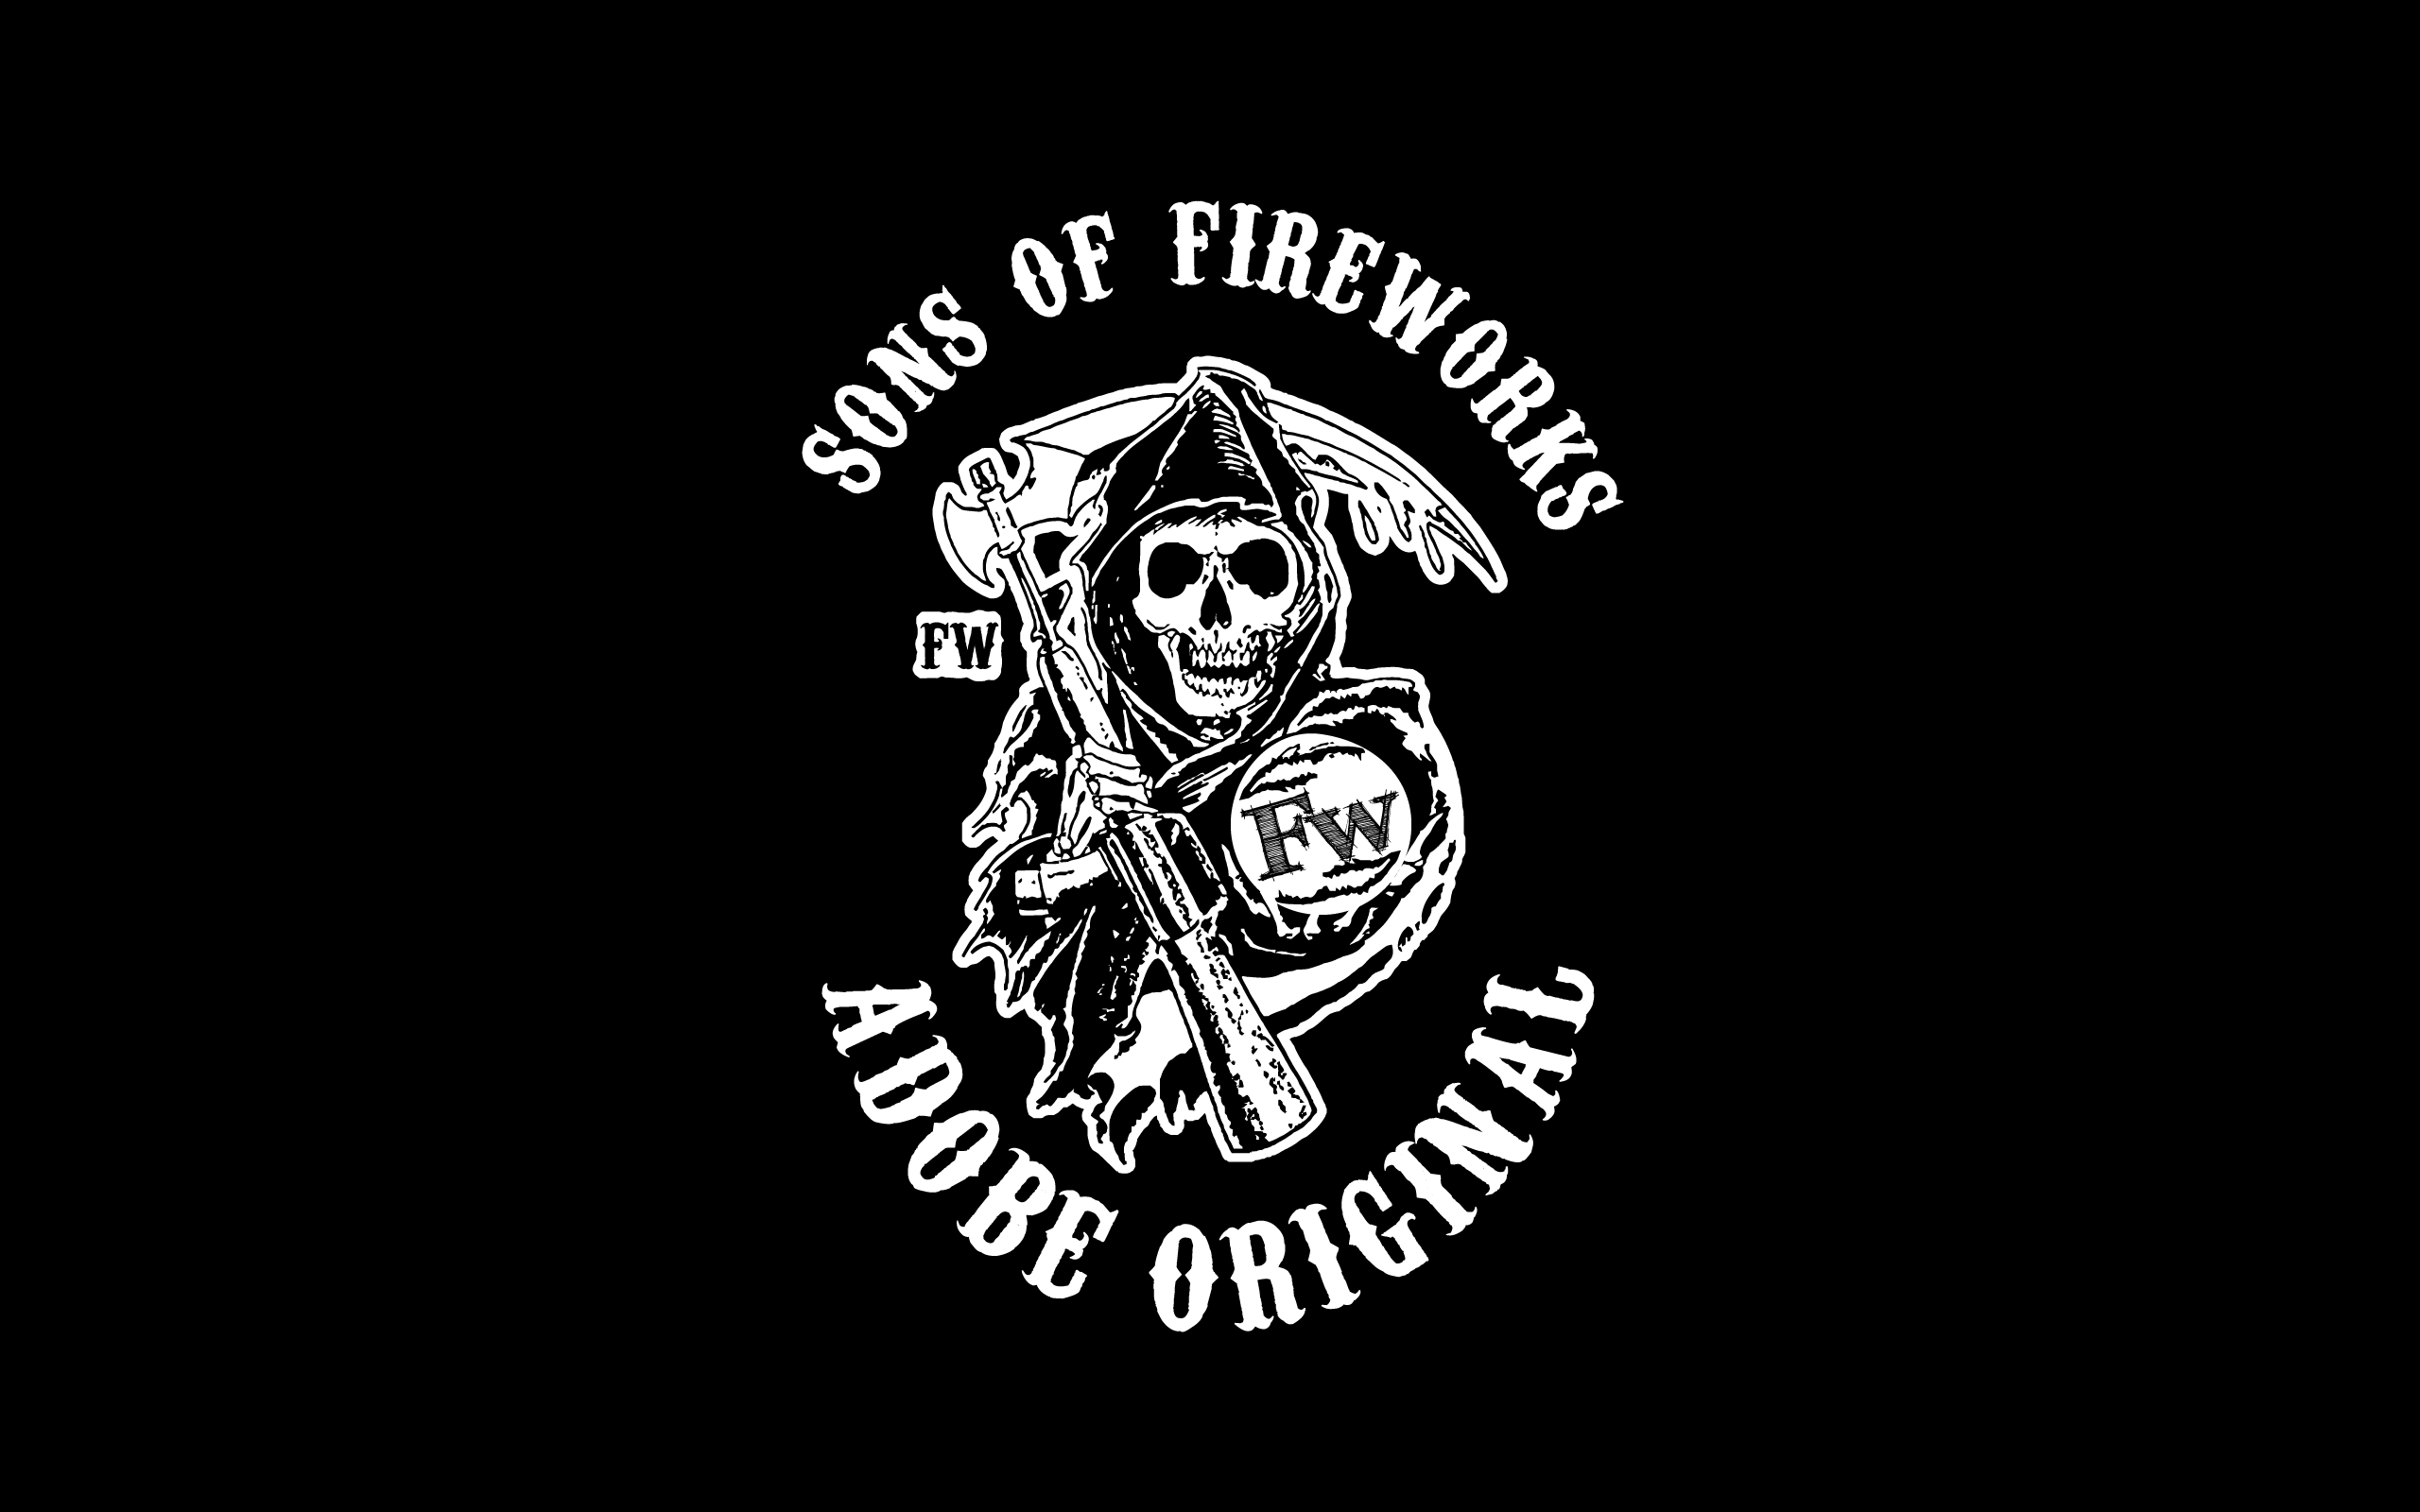 Sons Of Anarchy Reaper Wallpaper